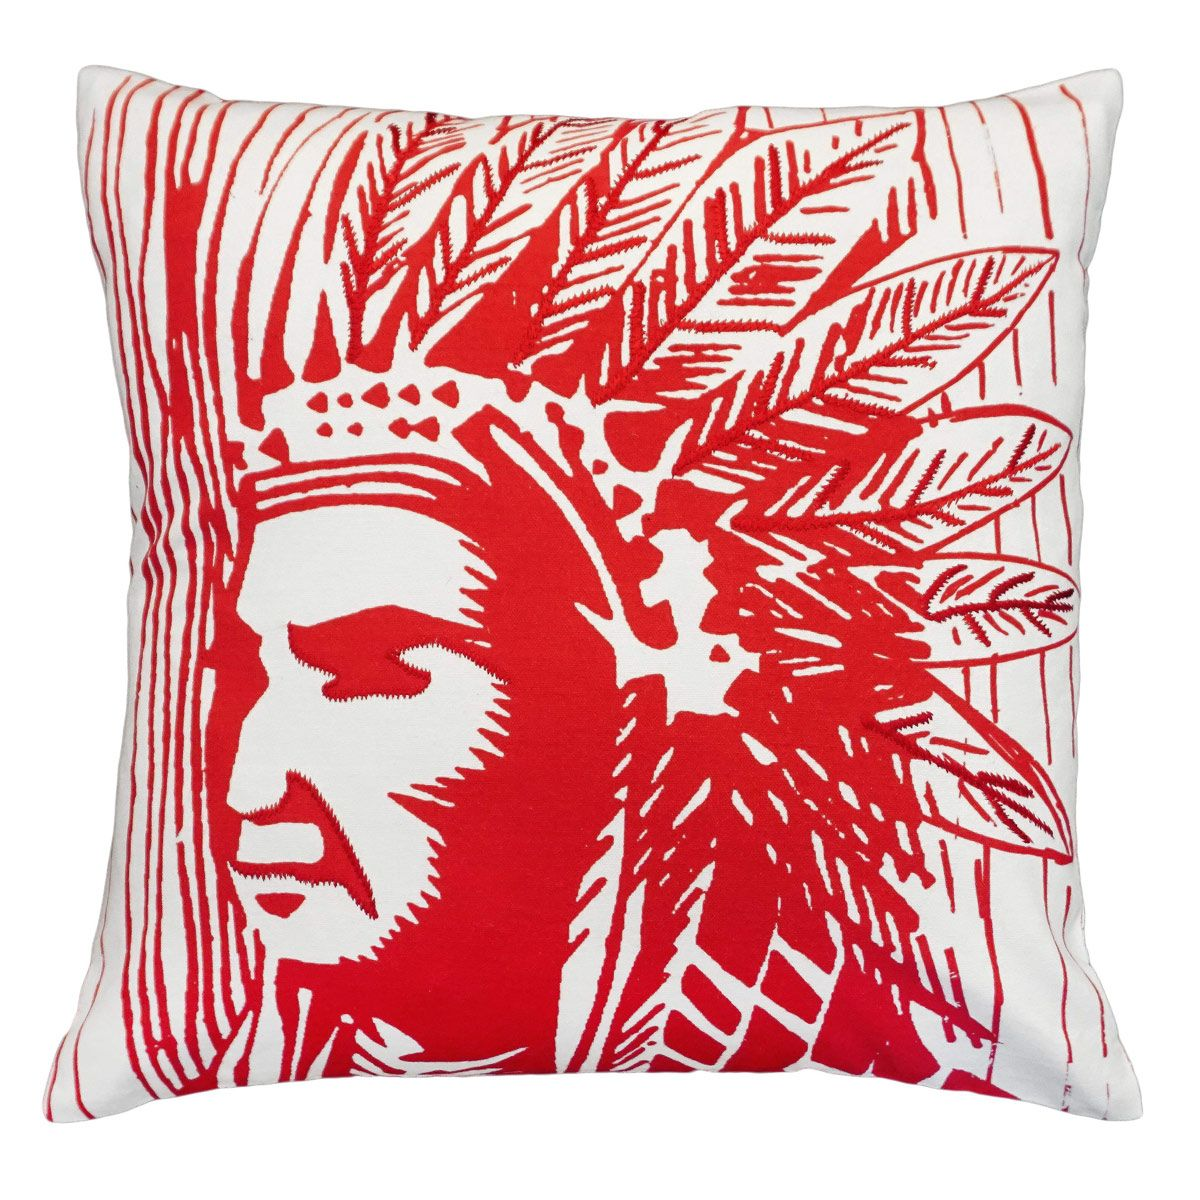 Warrior Printed Pillow